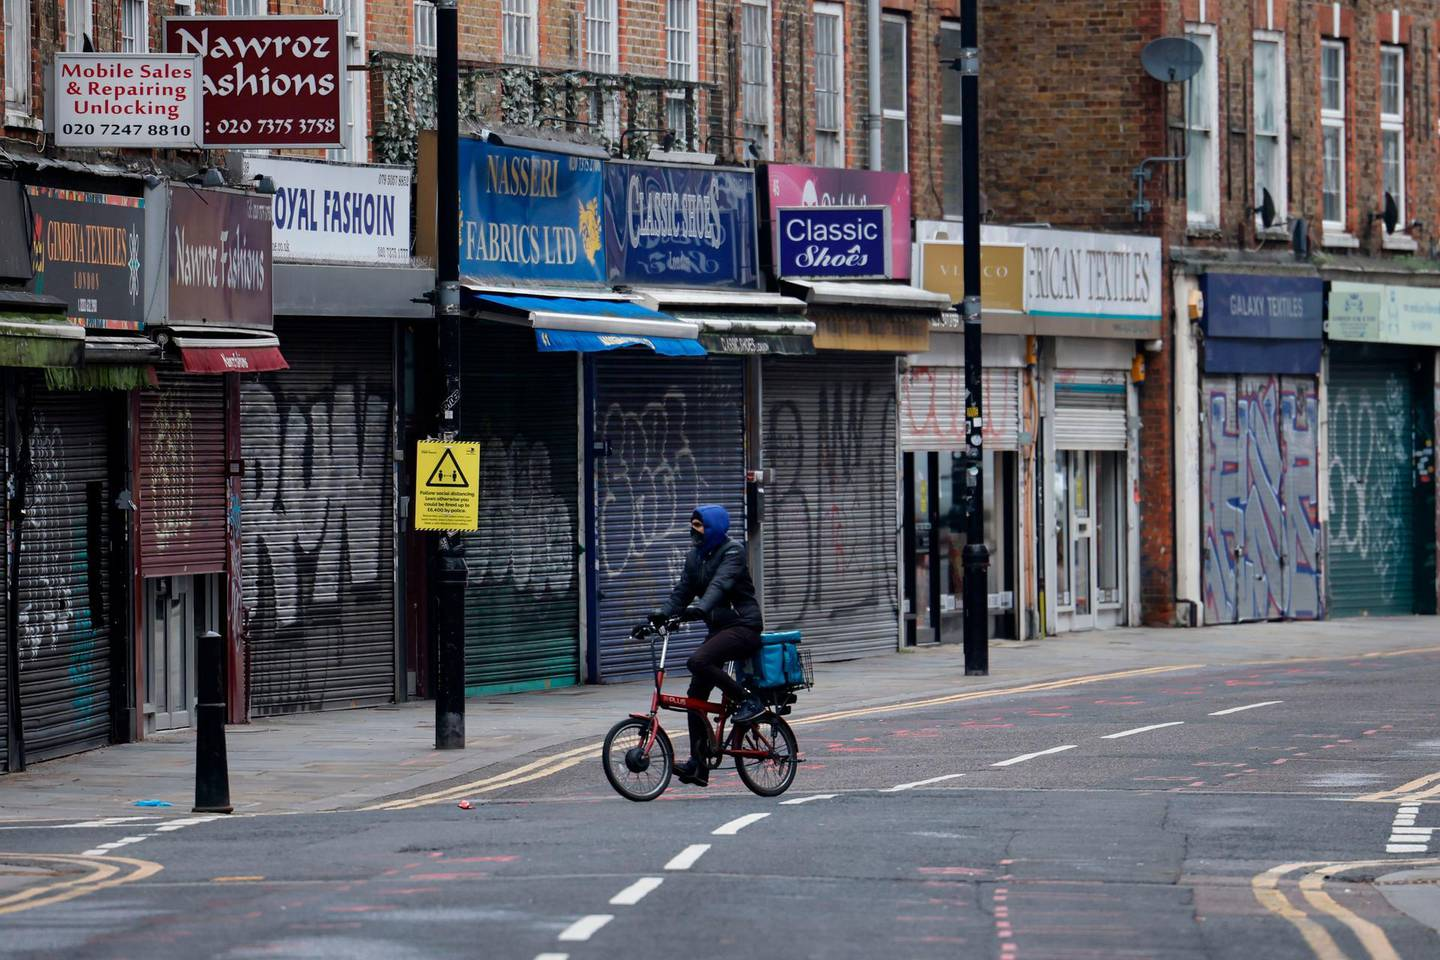 A delivery man cycles past shuttered shops along a near-deserted street in the City of London on January 15, 2021, during the third coronavirus lockdown. Britain's economy slumped 2.6 percent in November on coronavirus restrictions, official data showed January 15, 2021, stoking fears that the current virus lockdown could spark a double-dip recession. / AFP / Tolga Akmen